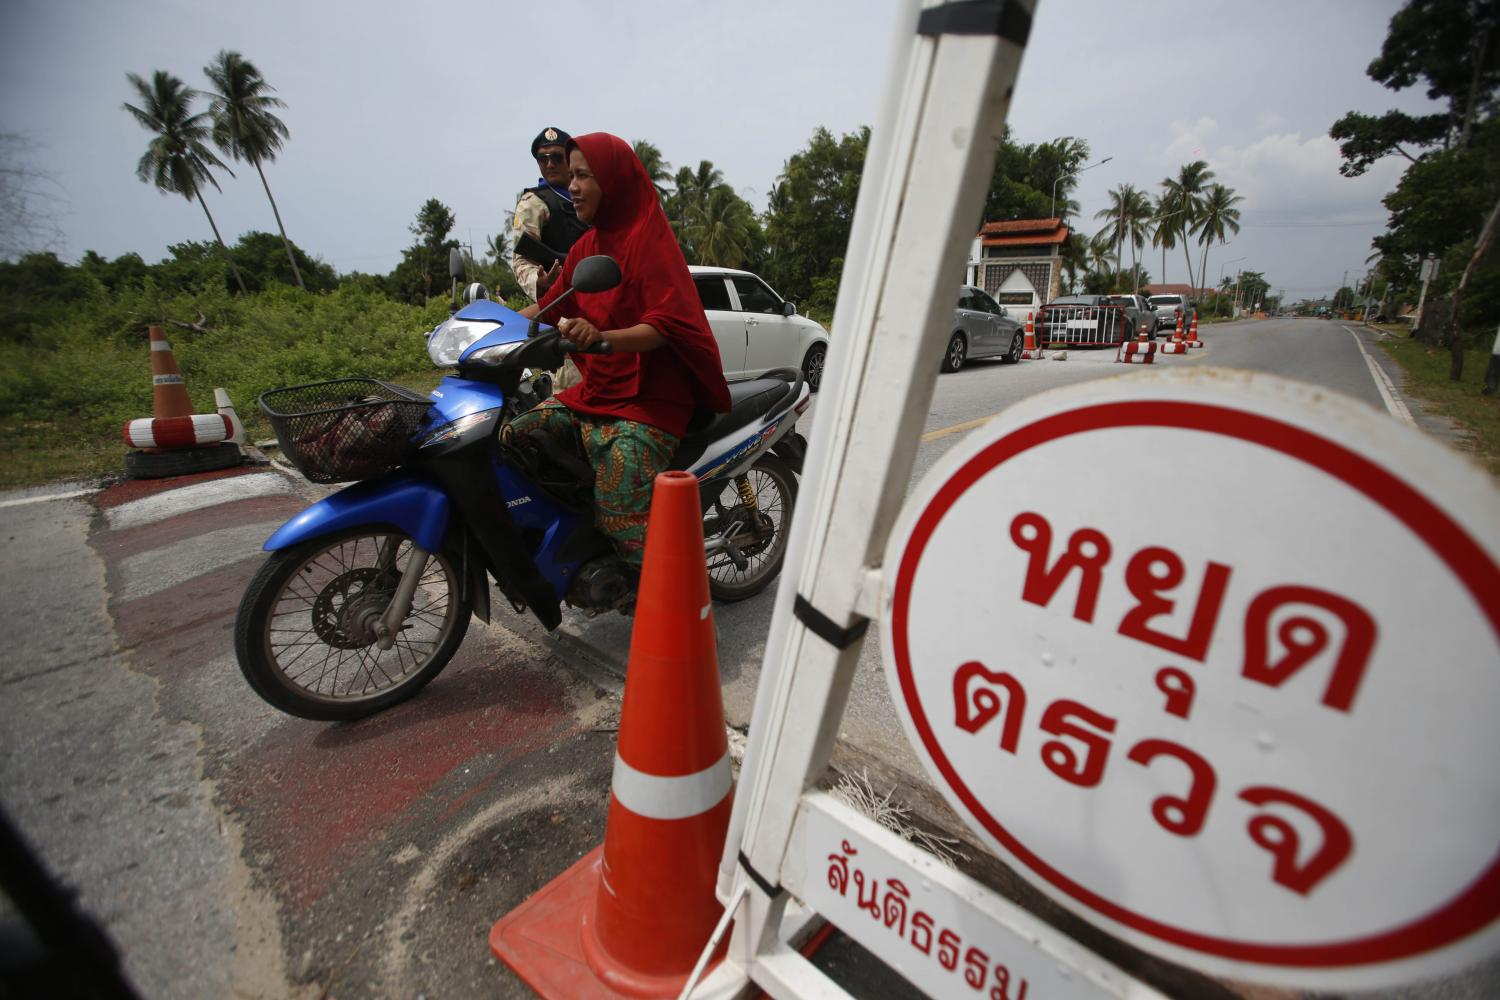 A motorist drives through a security checkpoint set up along a road in Pattani, where many roads in areas which are prone to unrest are under heavy surveillance. Pornprom Satrabhaya